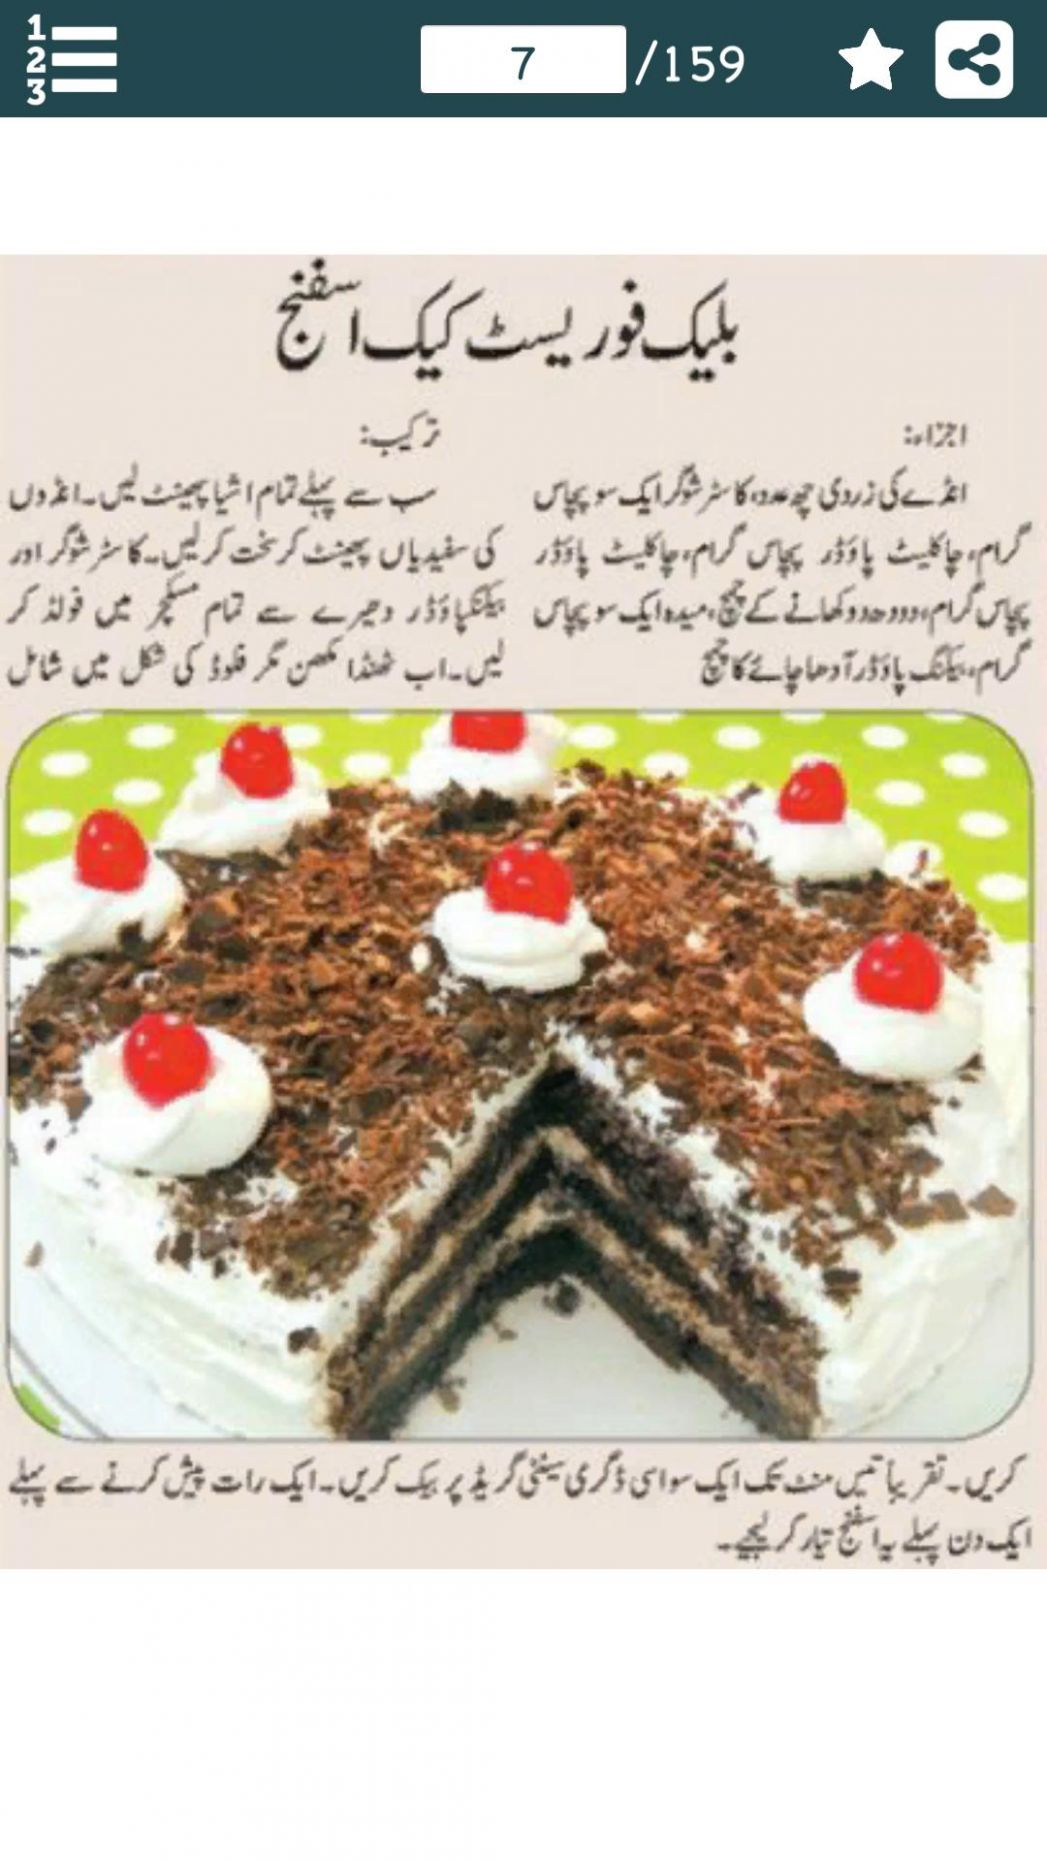 Cake Recipes in URDU for Android - APK Download - Cake Recipes Urdu Download